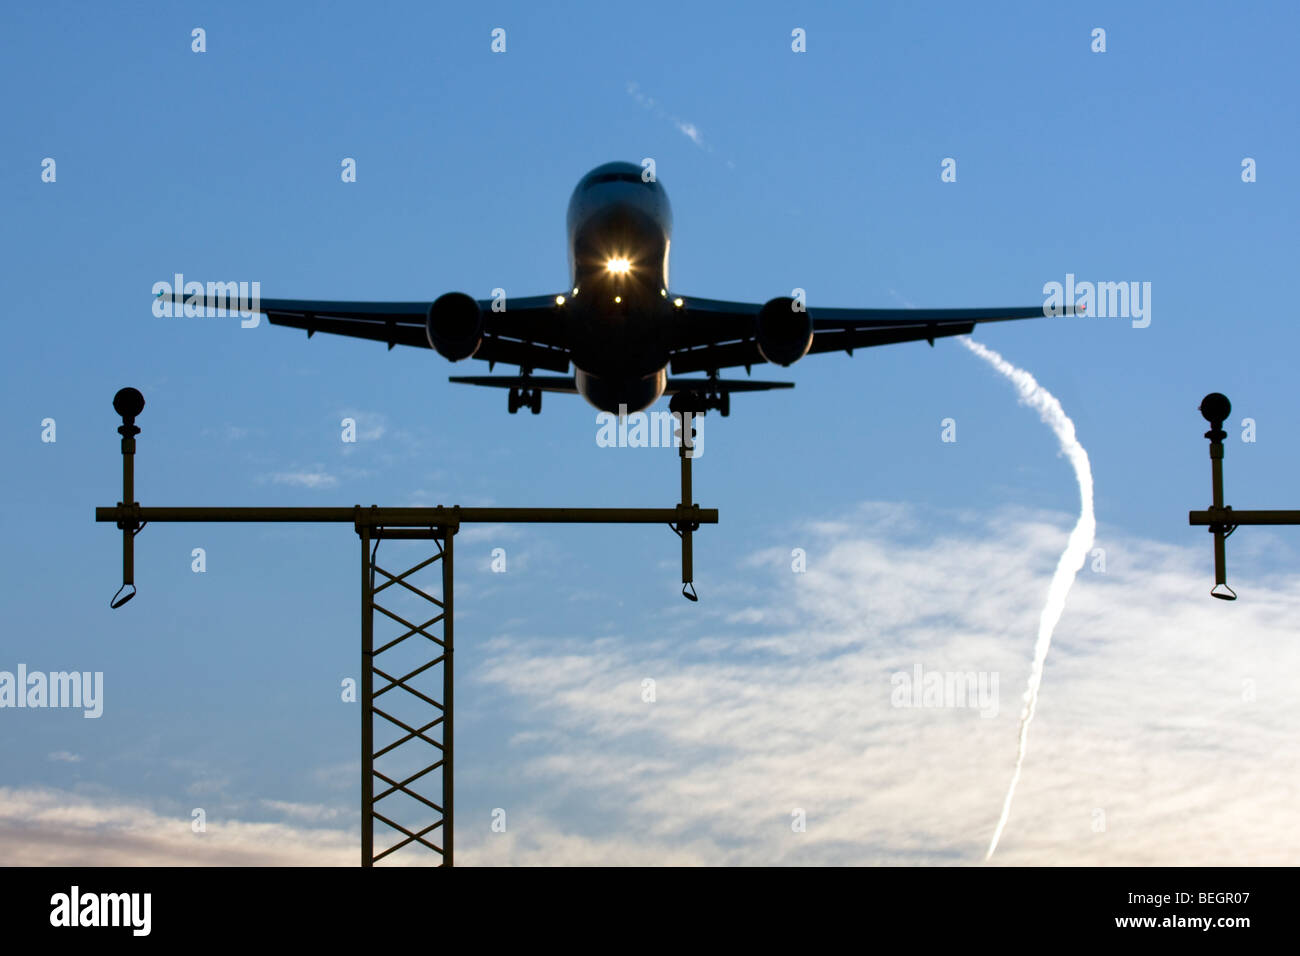 Commercial airliner on approach London Heathrow Airport UK Stock Photo